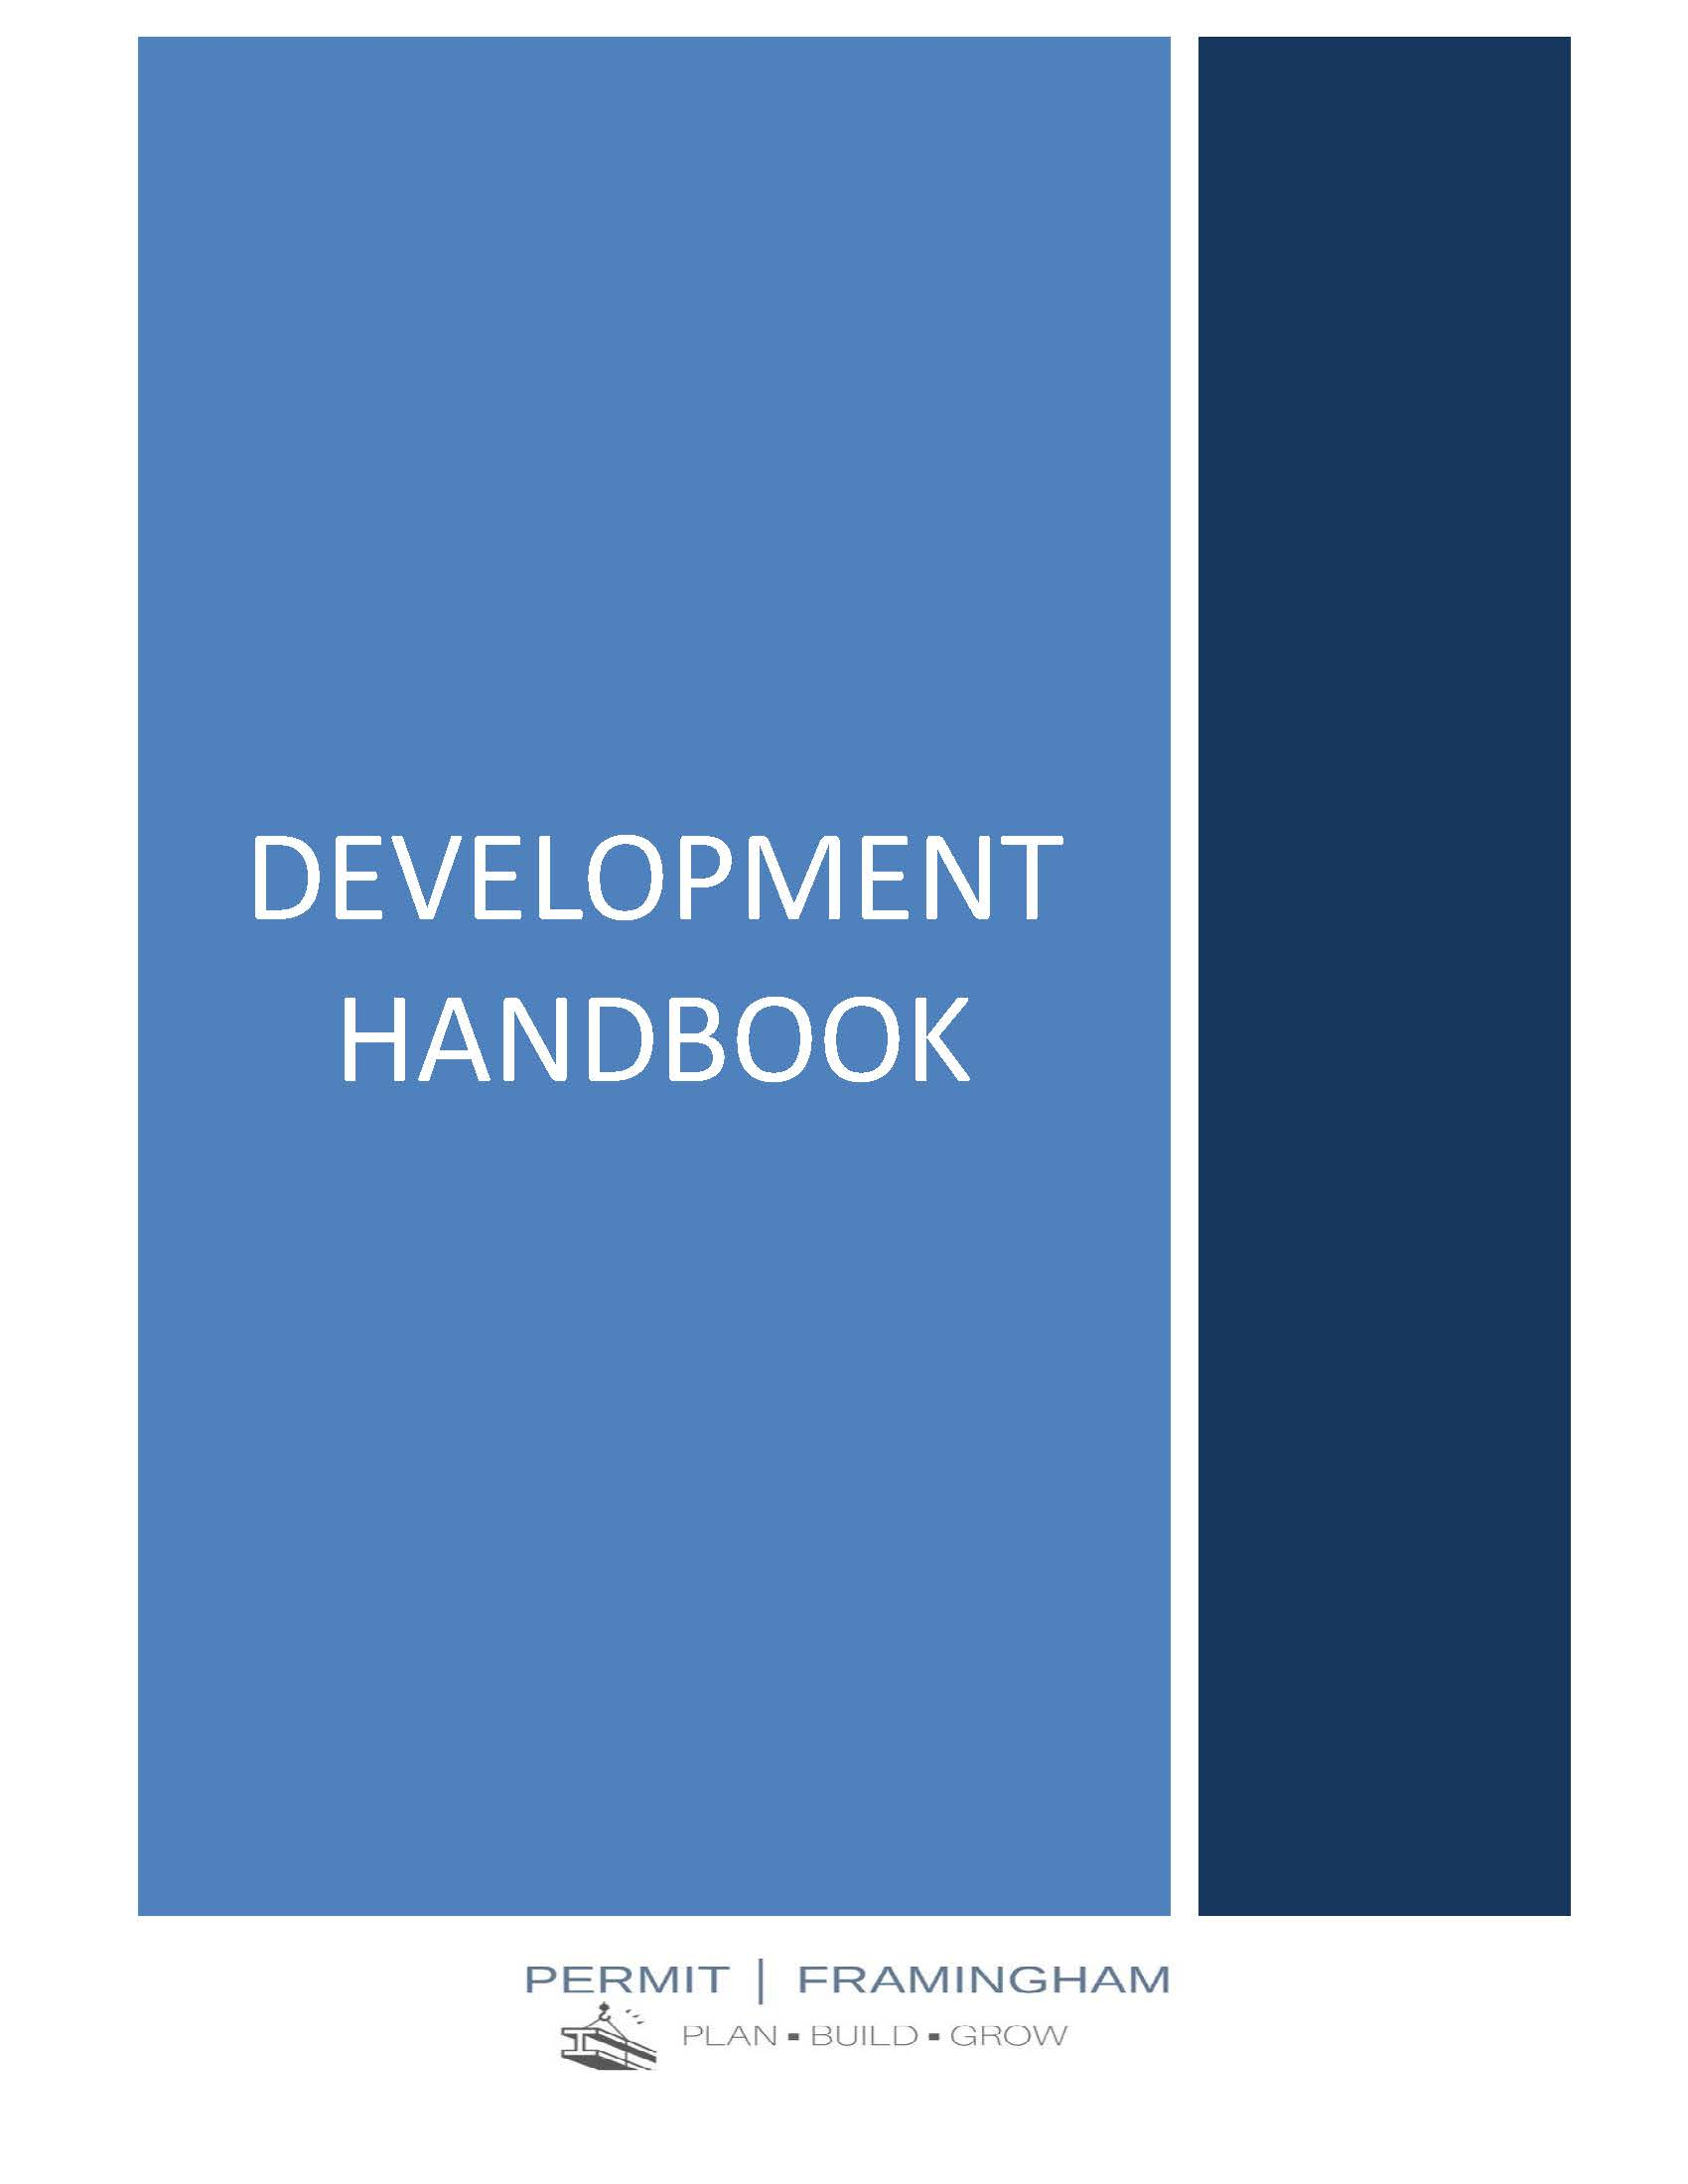 Cover of Plan-Build-Grow, which read Development Handbook